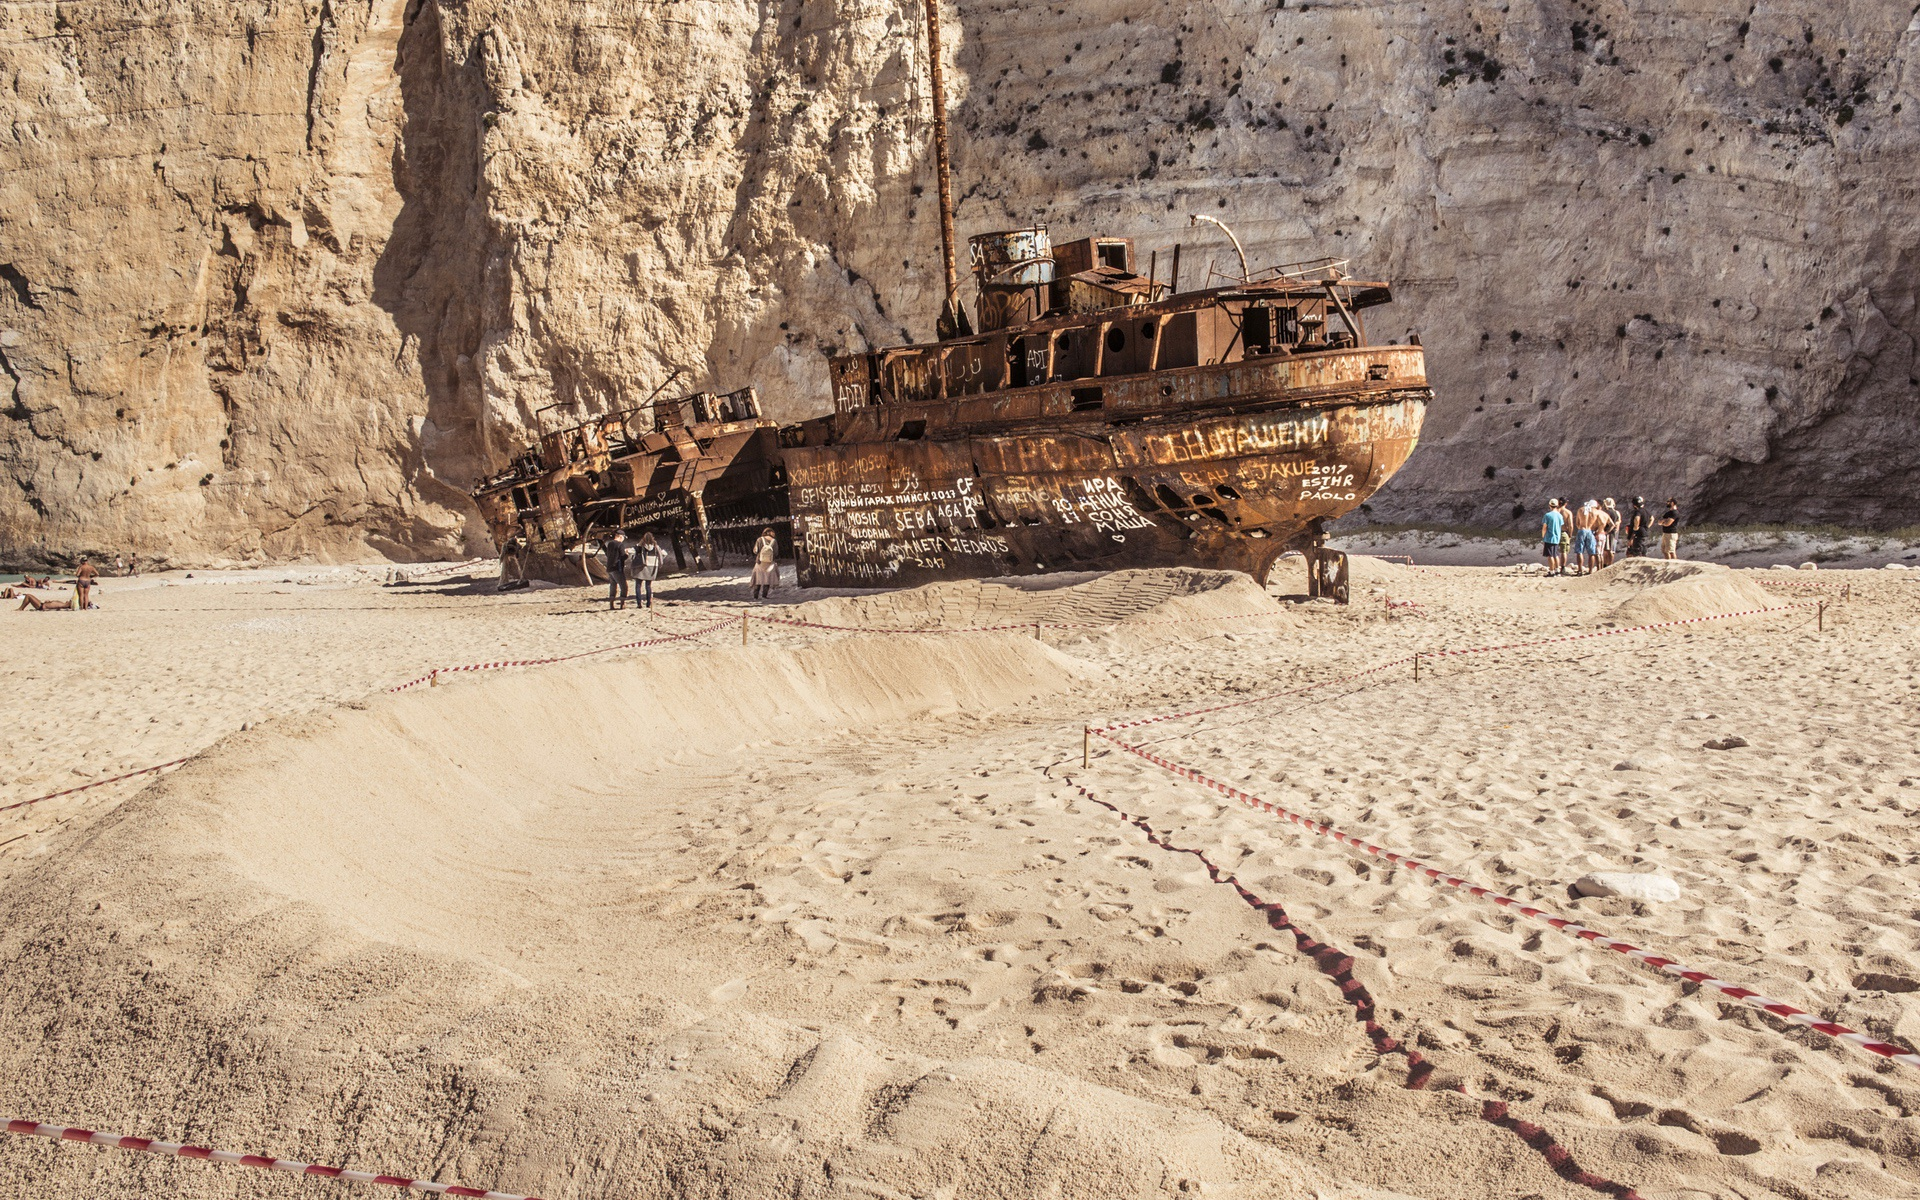 Romain_Febvre_Monster_Energy_Shipwreck_0051